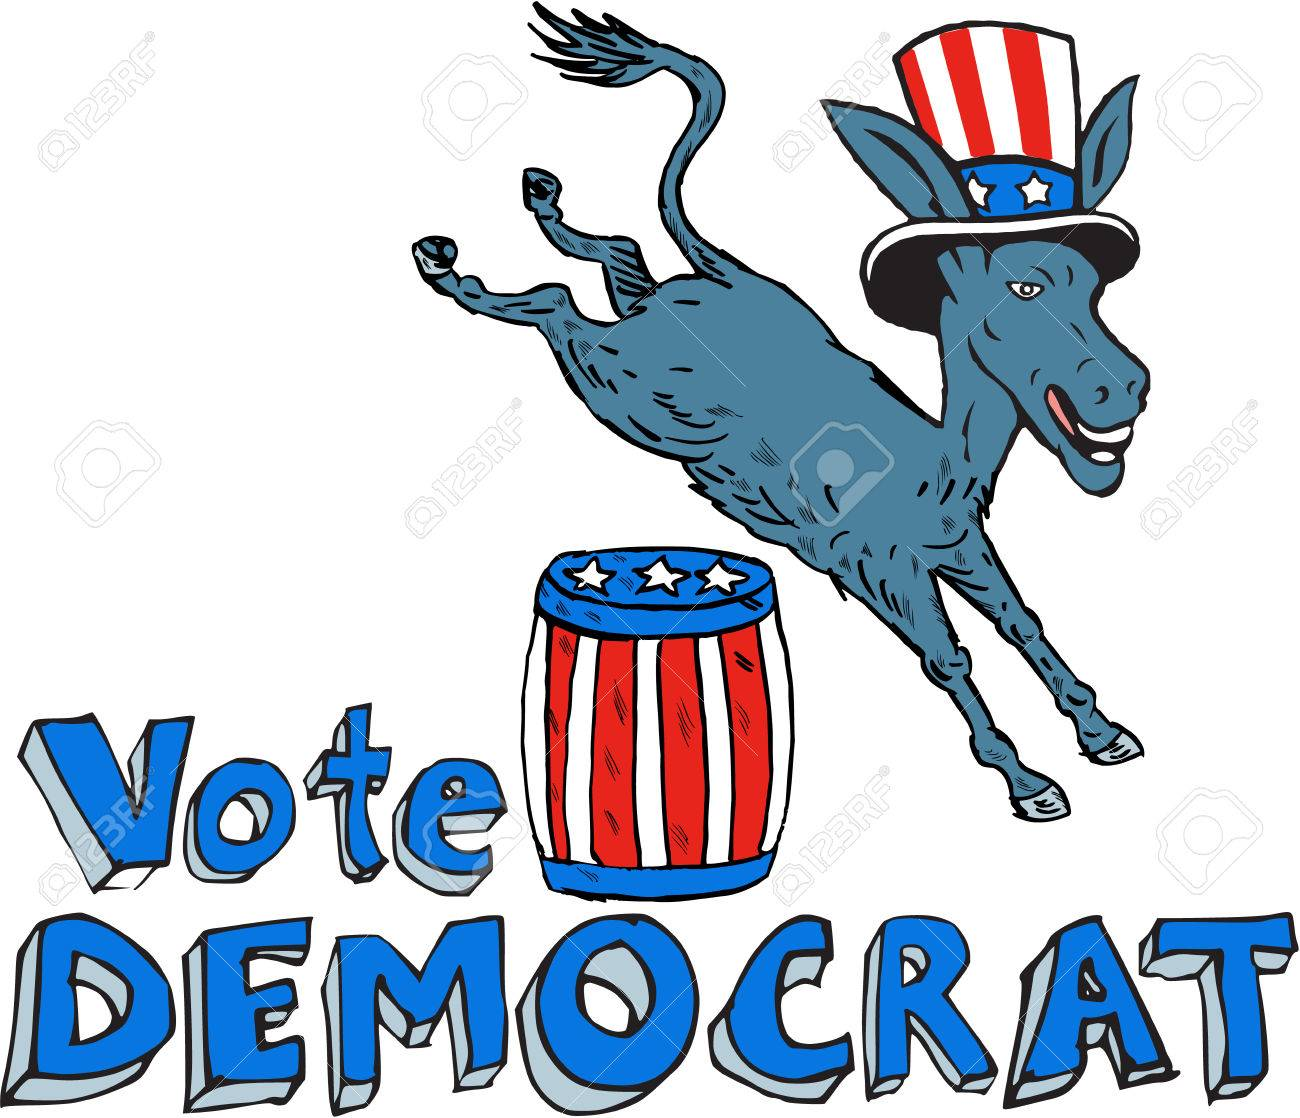 710 Democrat Donkey Stock Vector Illustration And Royalty Free ...